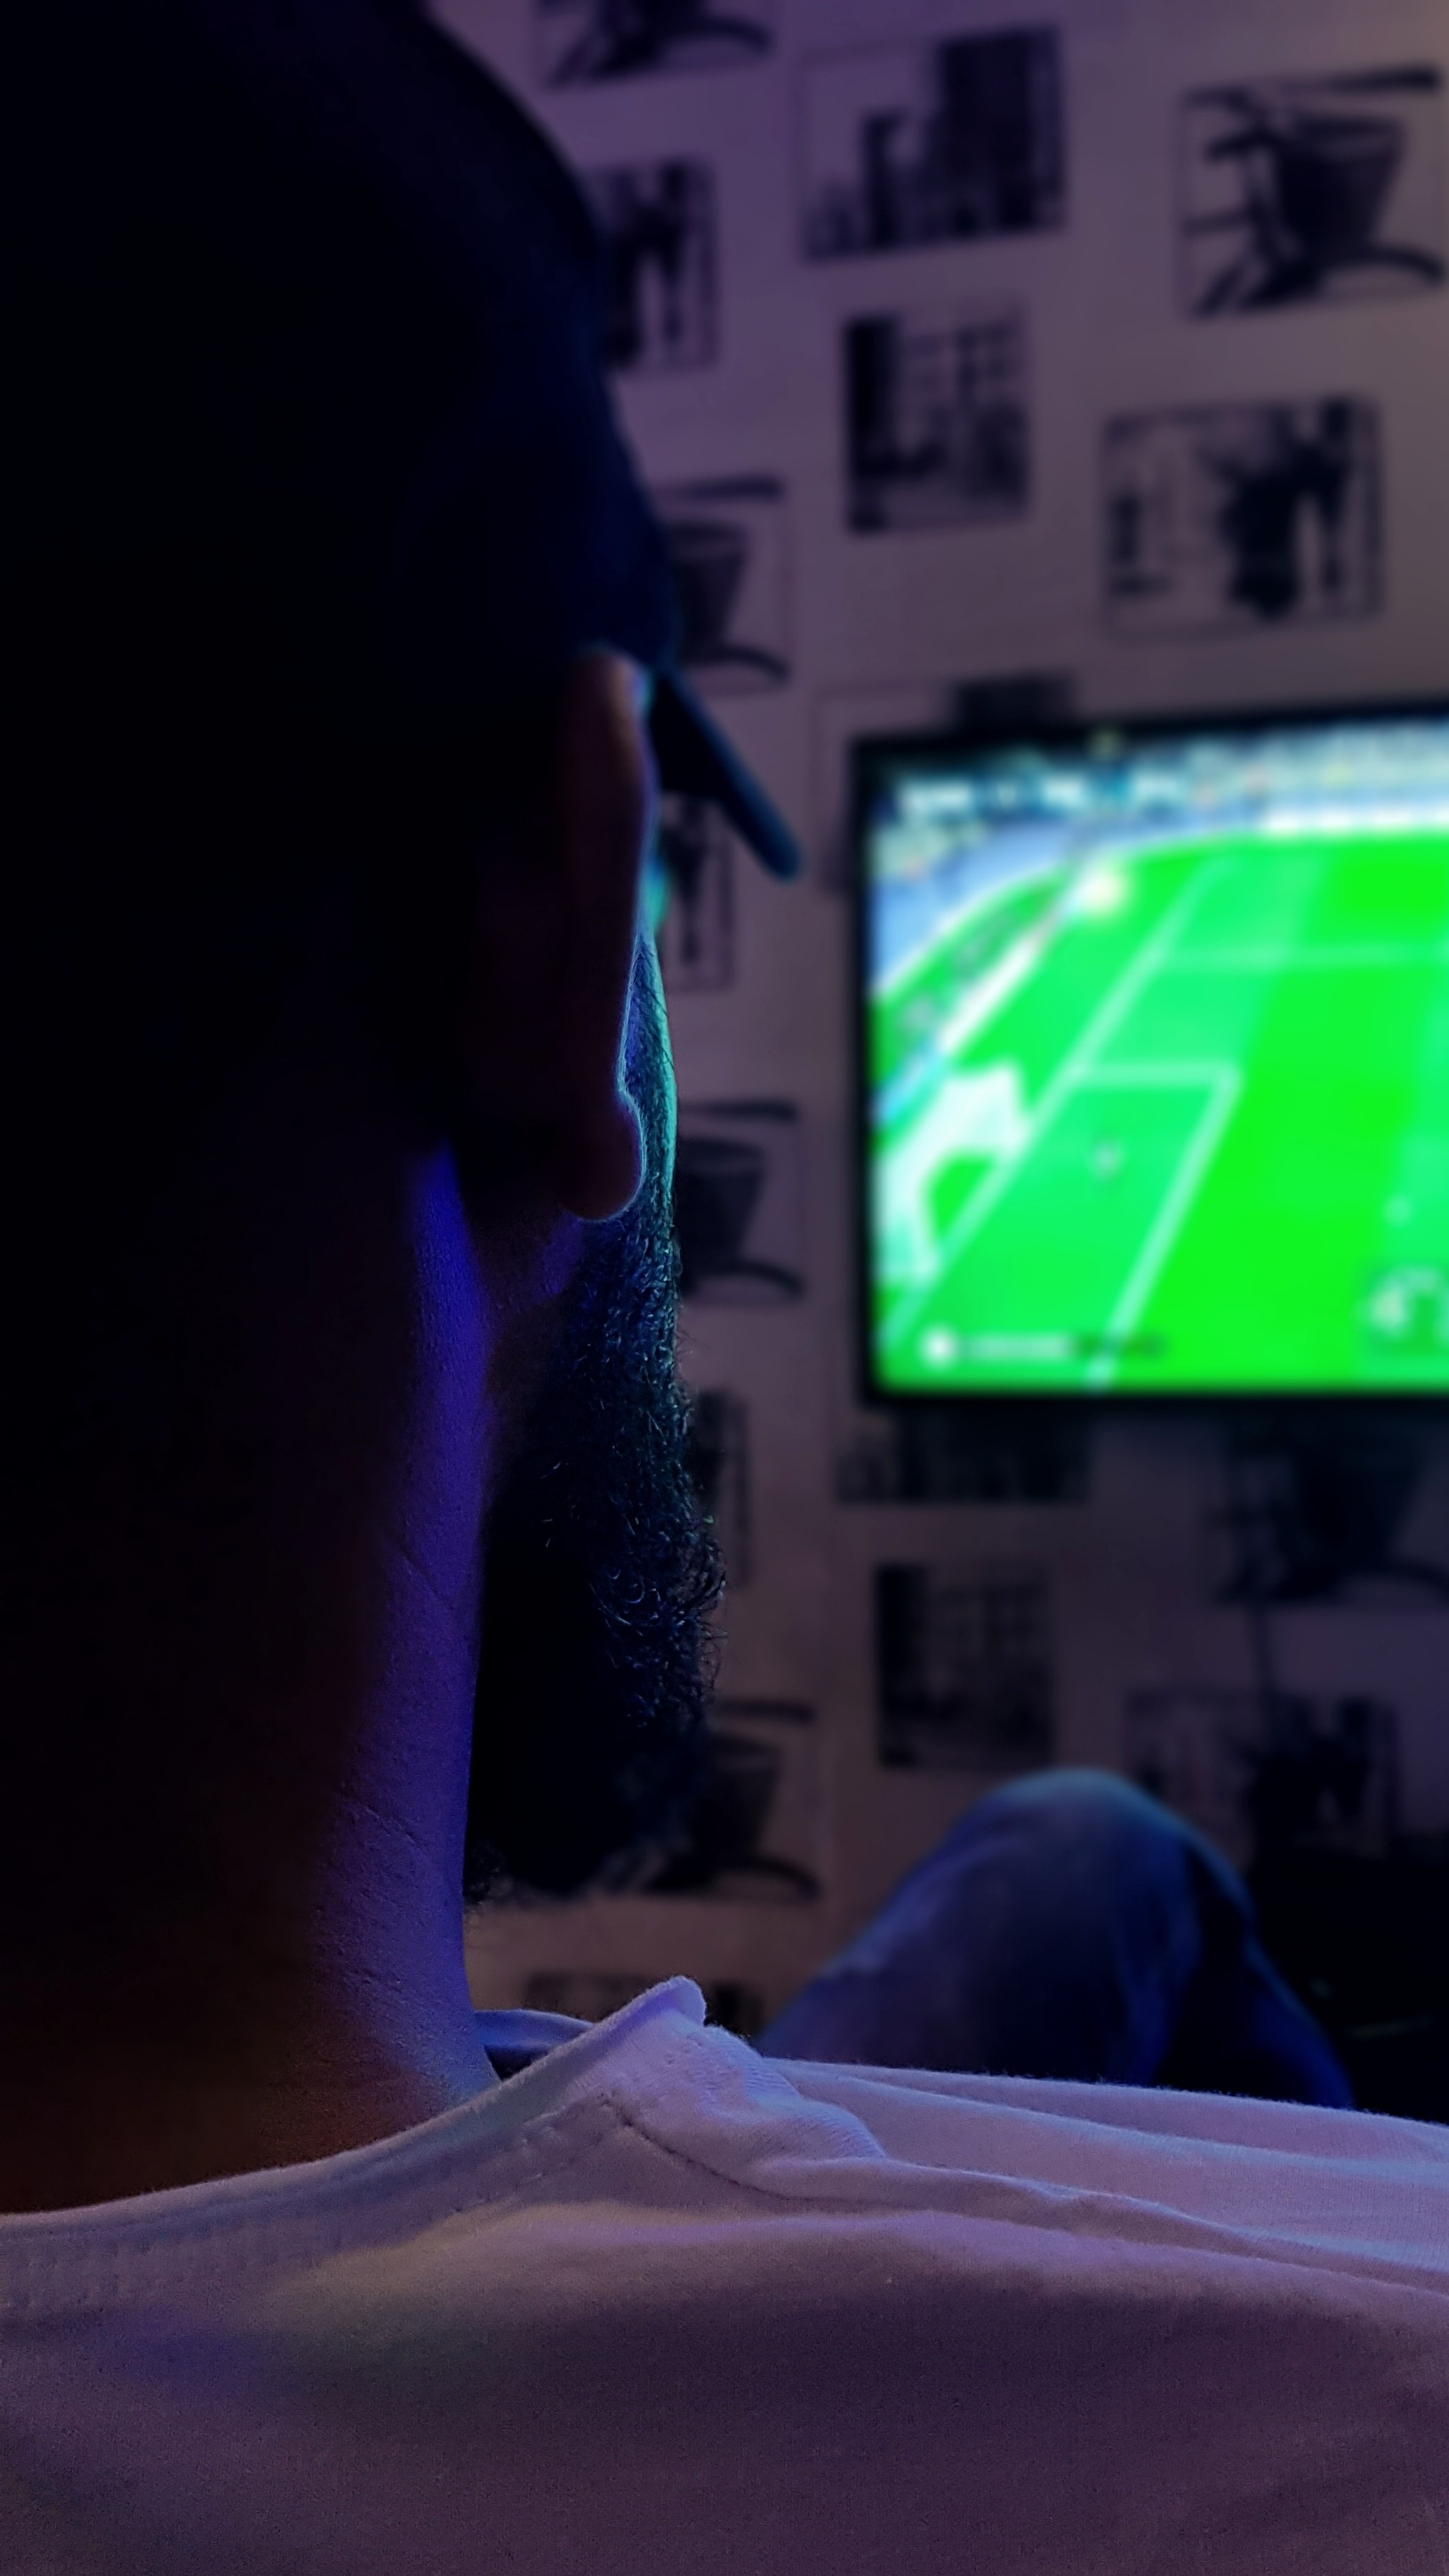 man watching soccer game